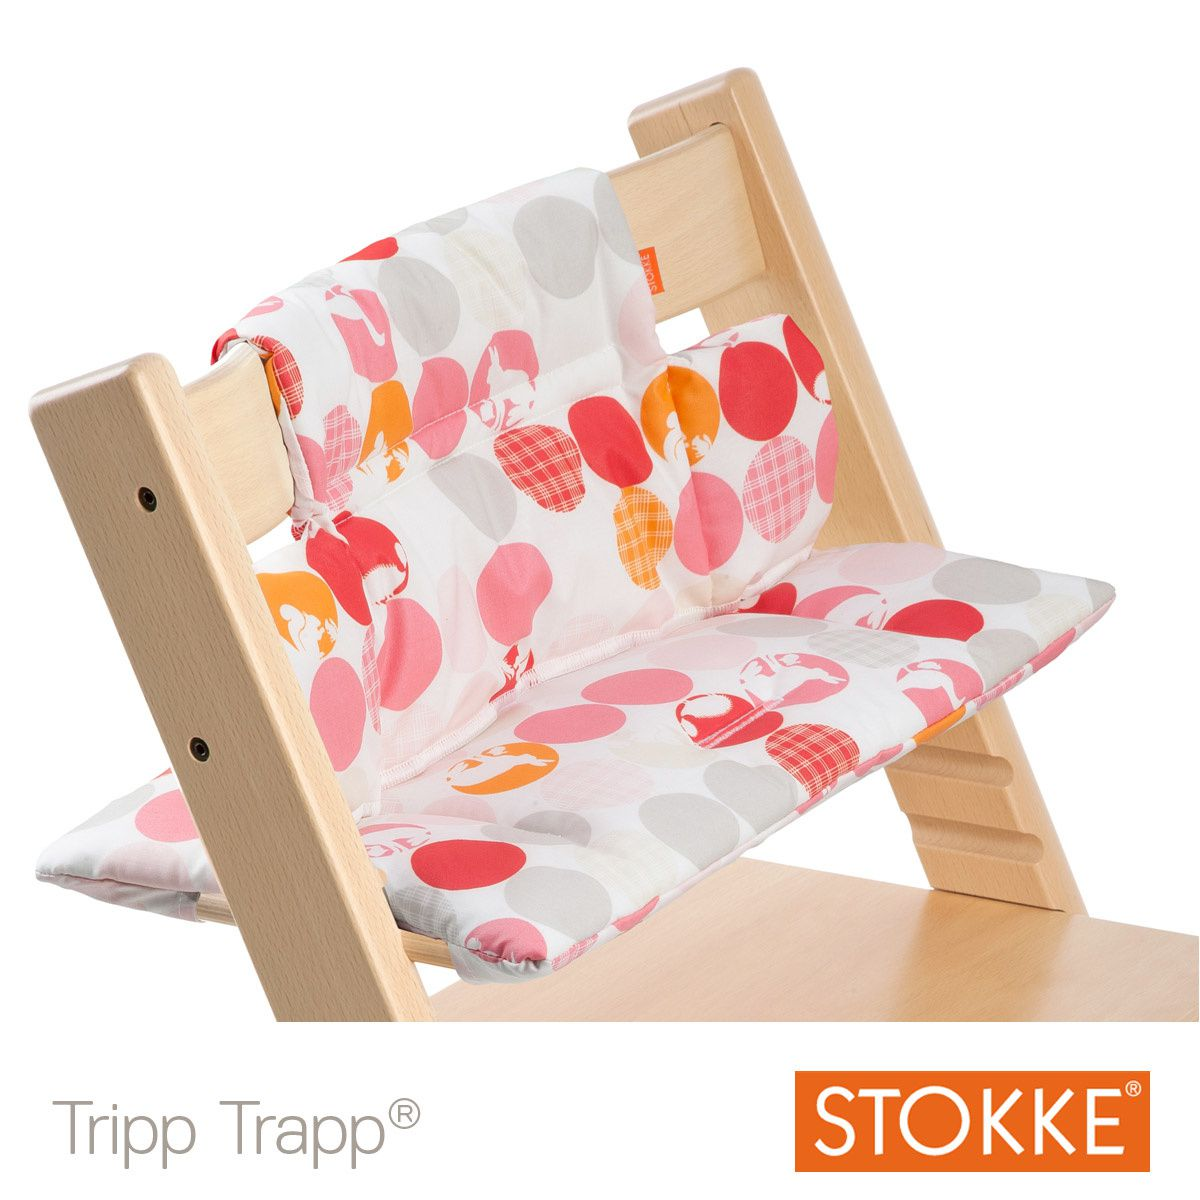 ma chaise haute stokke la tripp trapp bellenceinte. Black Bedroom Furniture Sets. Home Design Ideas